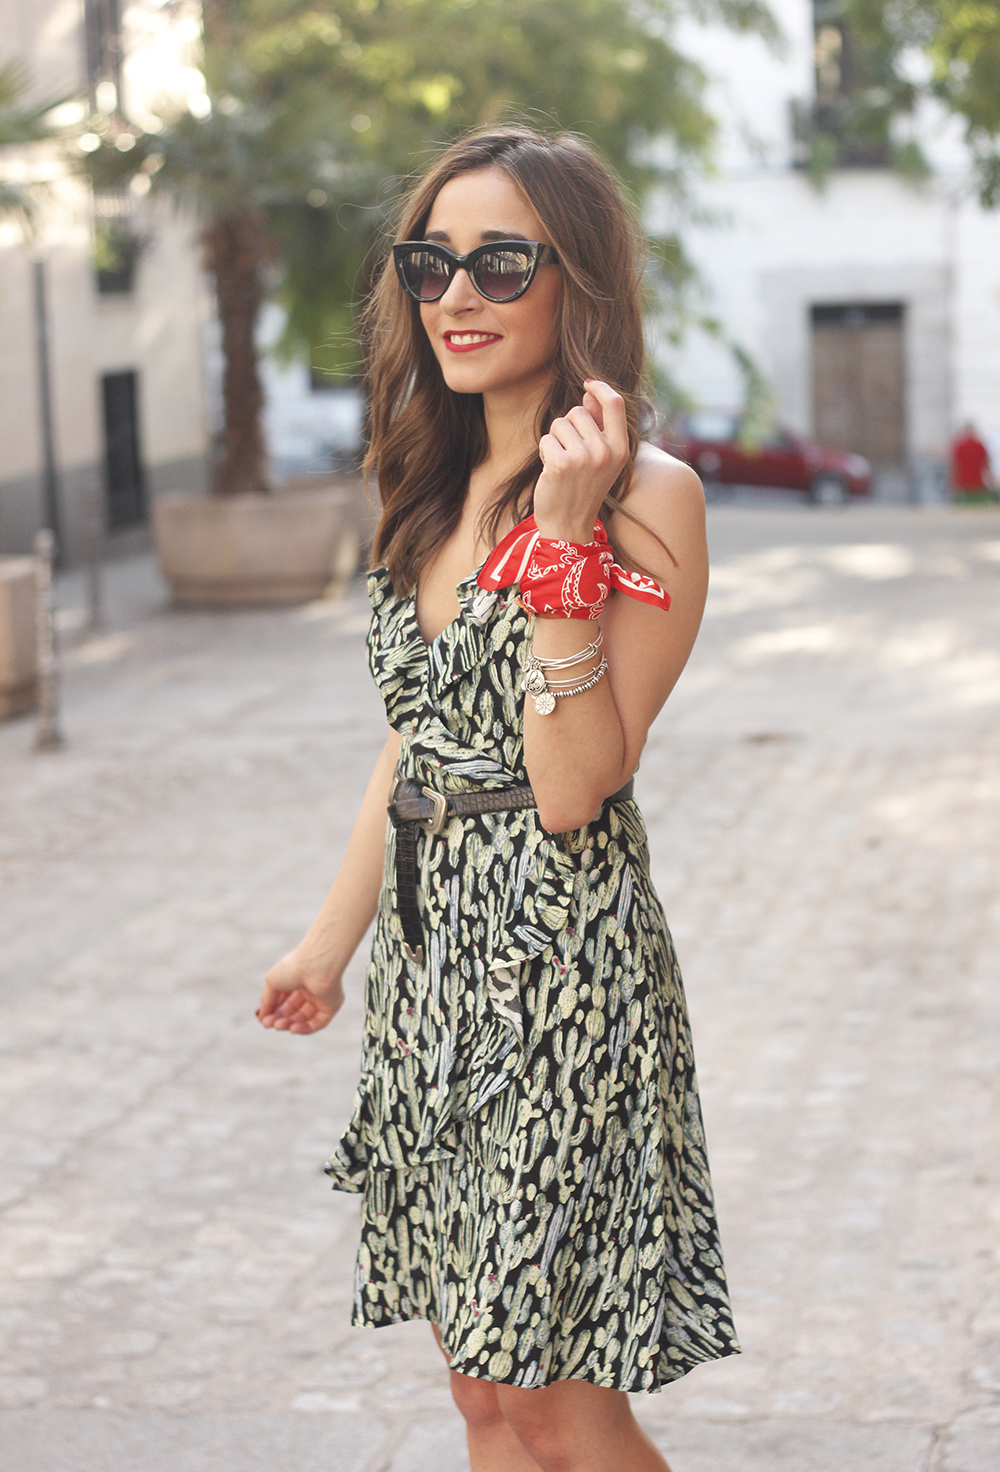 summer dress with cactus prints black sandals sunnies outfit style 19